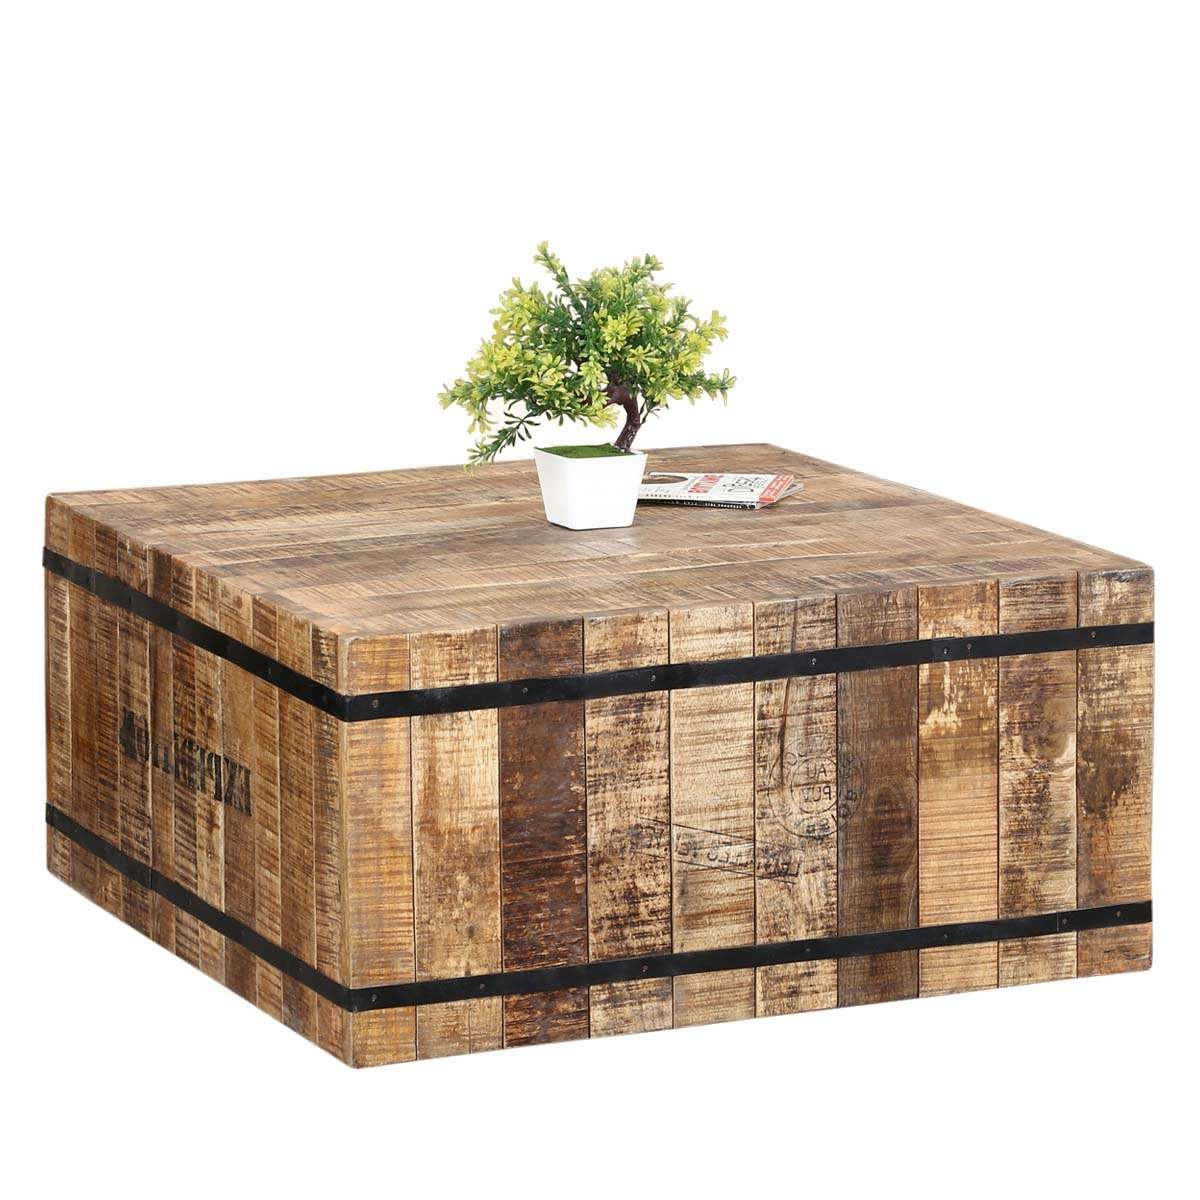 Rustic Mango Wood & Iron Square Box Style Coffee Table Throughout Favorite Rustic Style Coffee Tables (View 16 of 20)